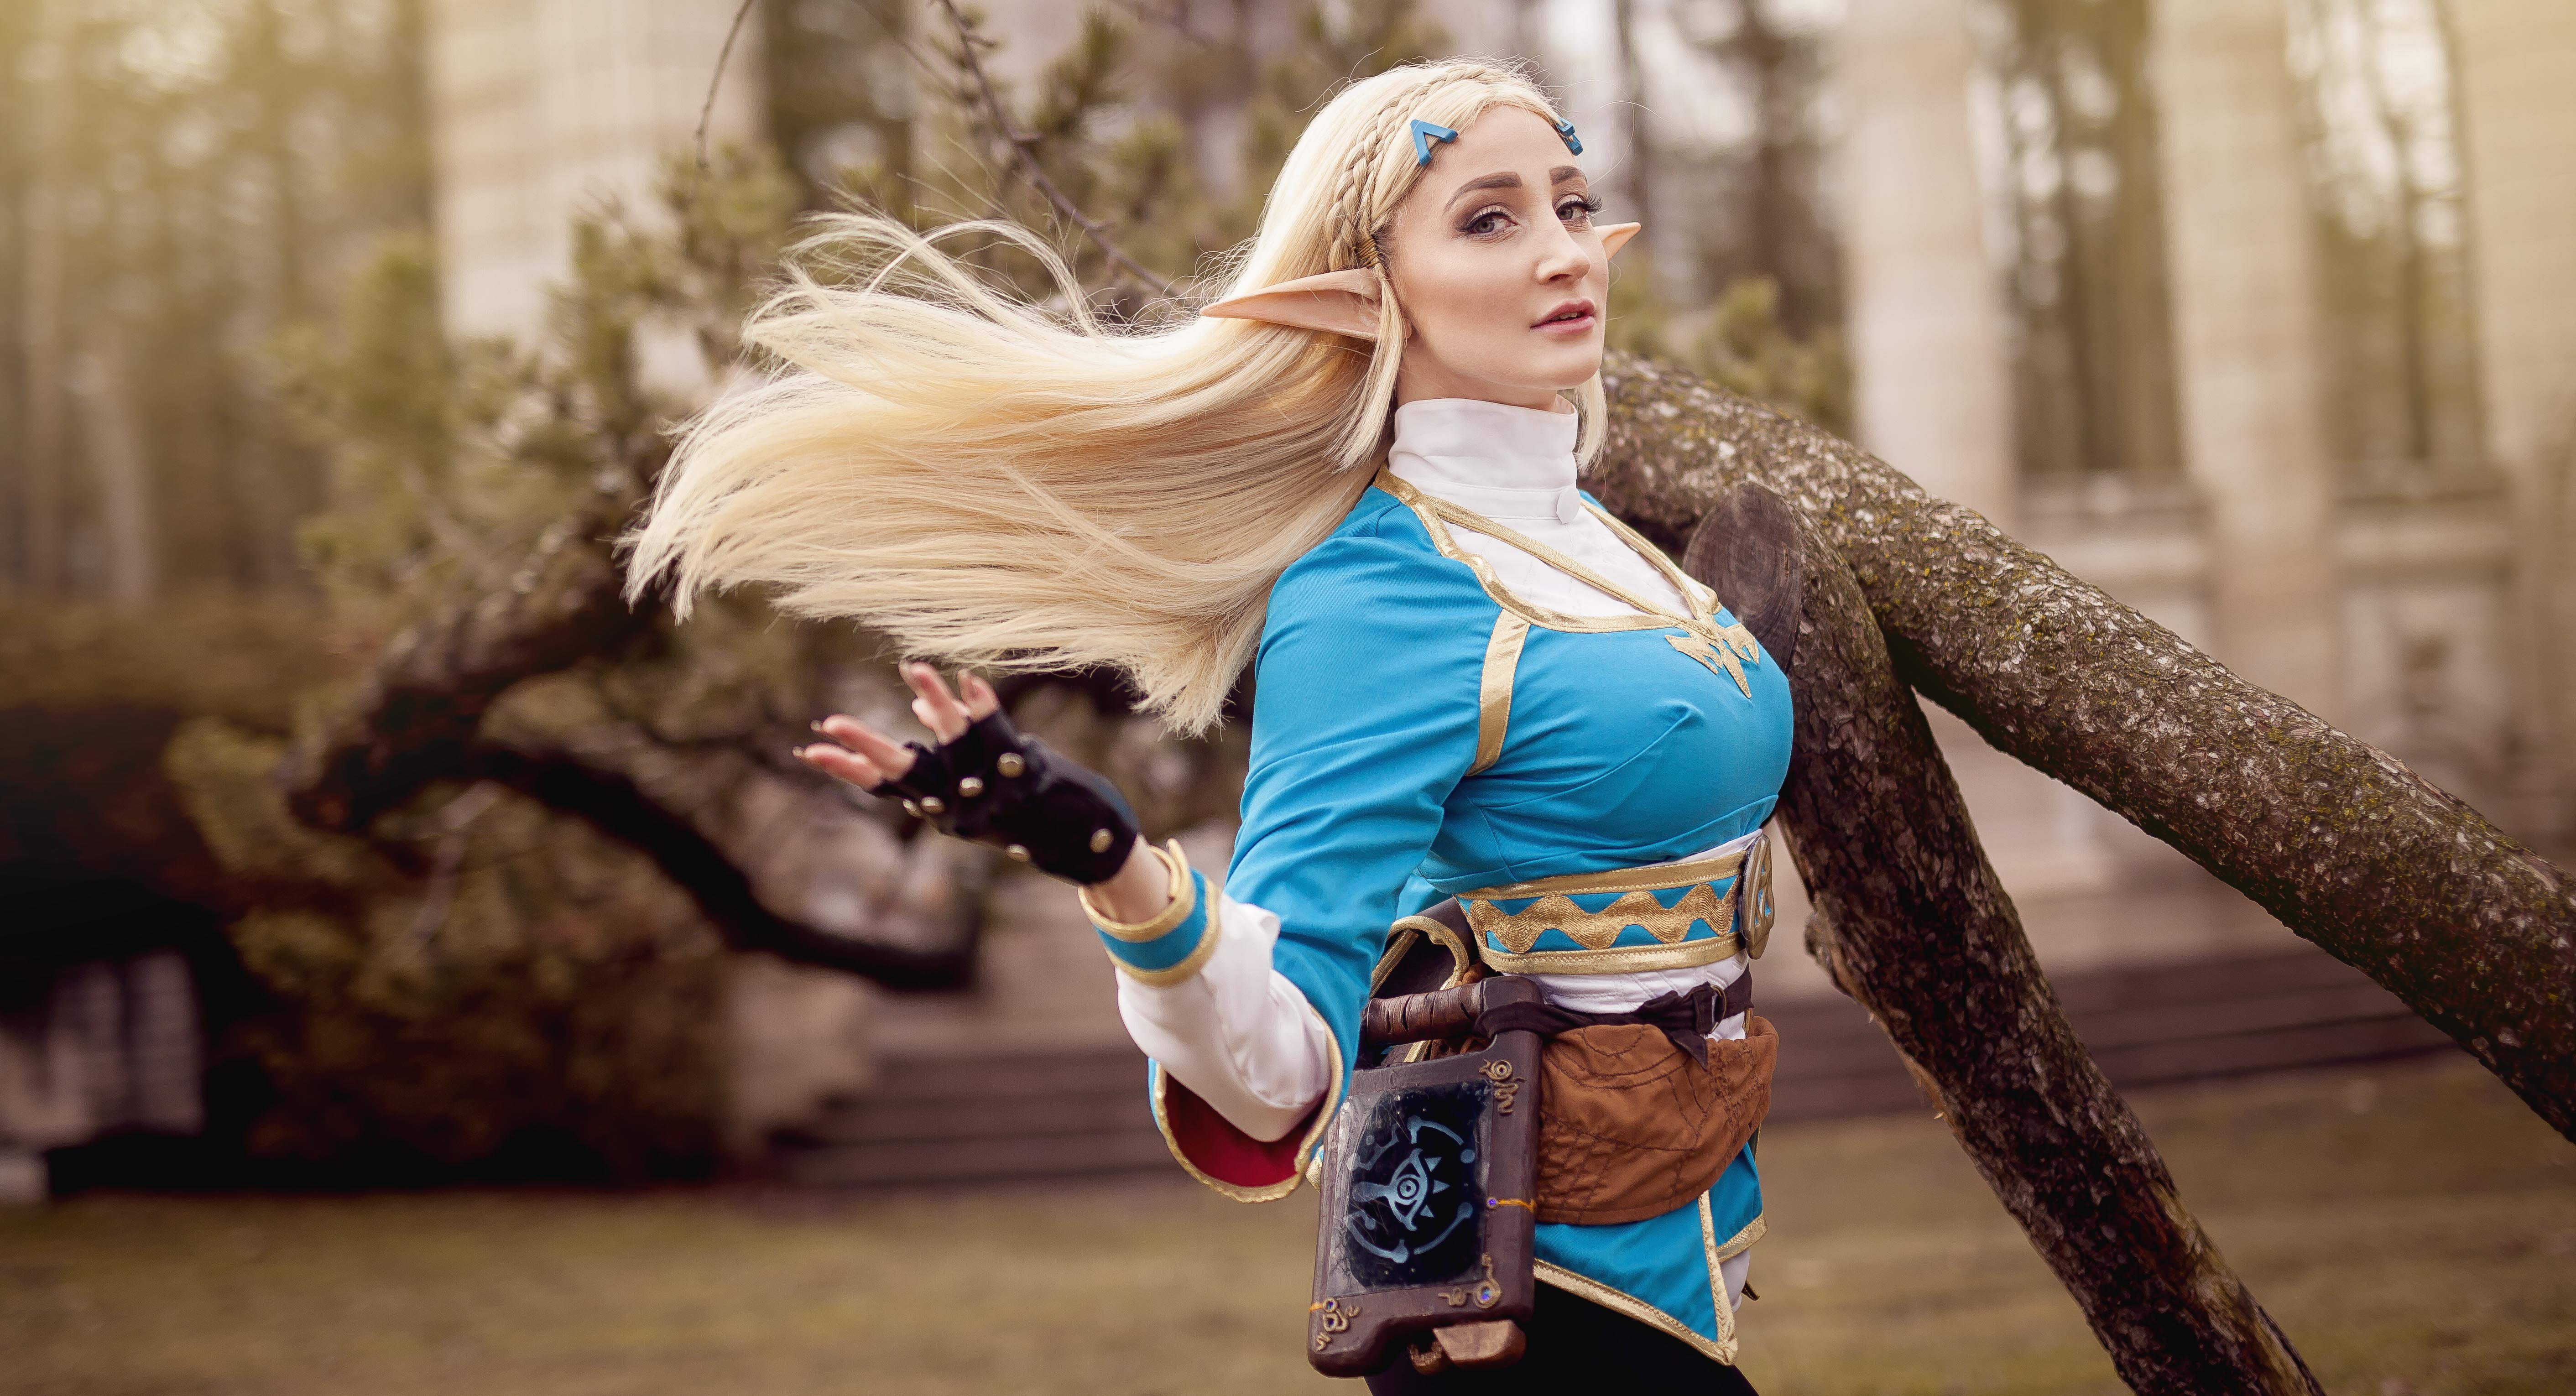 Gallery: Behold This Amazing Zelda: Breath Of The Wild